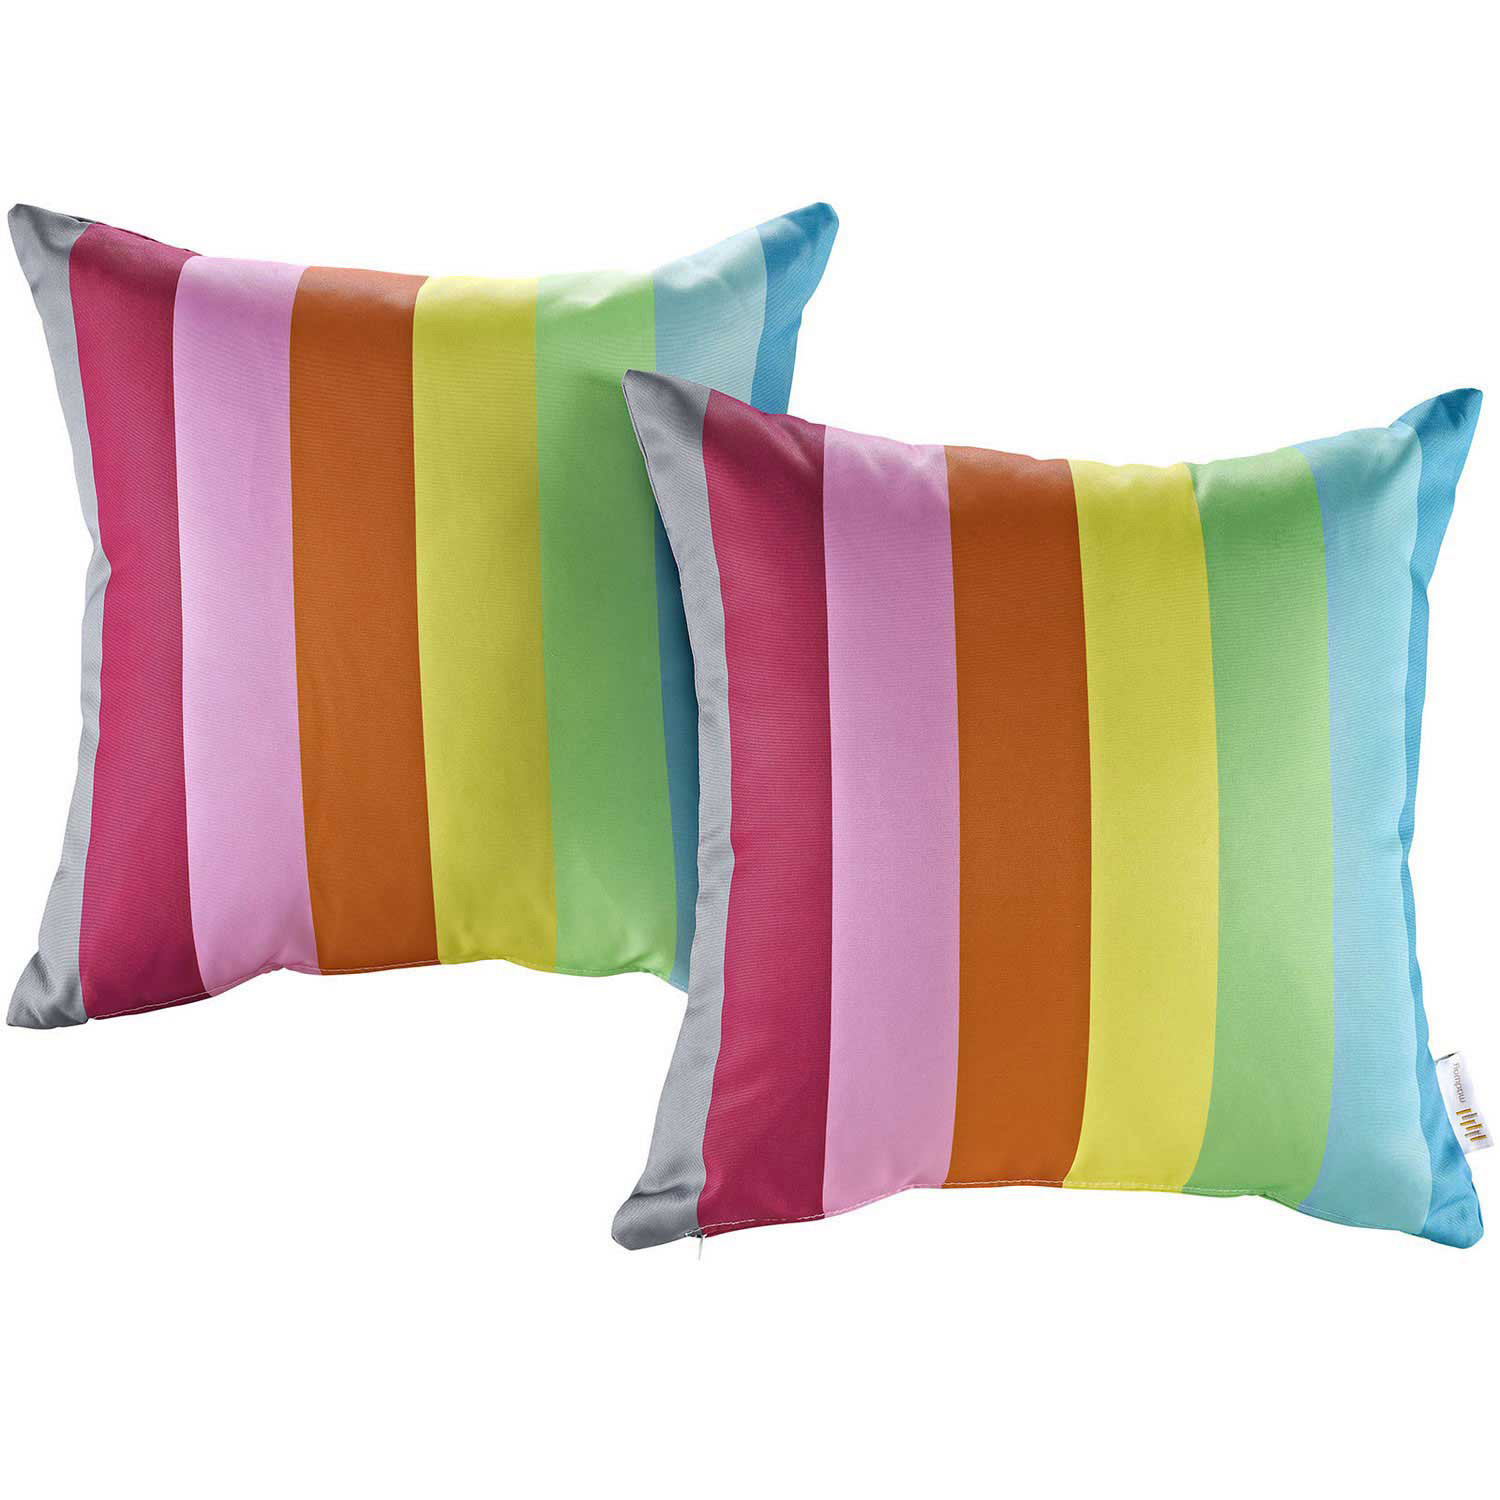 Modway Modway Two Piece Outdoor Patio Pillow Set - Rainbow